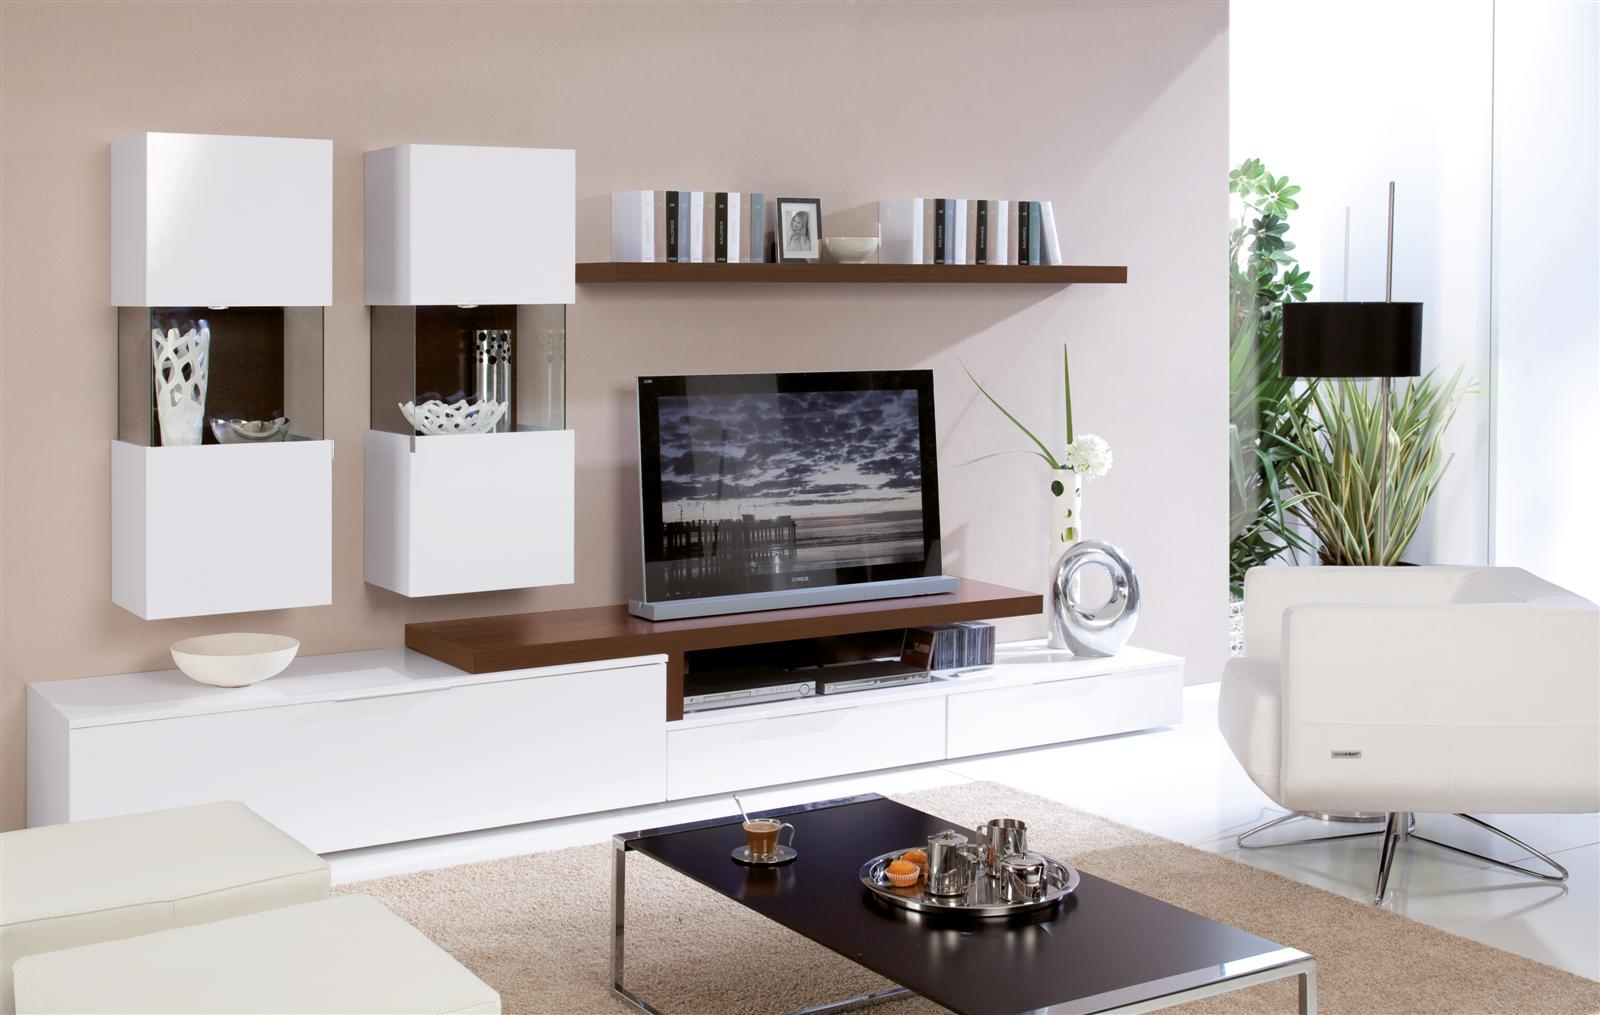 20 modern tv unit design ideas for bedroom living room Interior design tv wall units